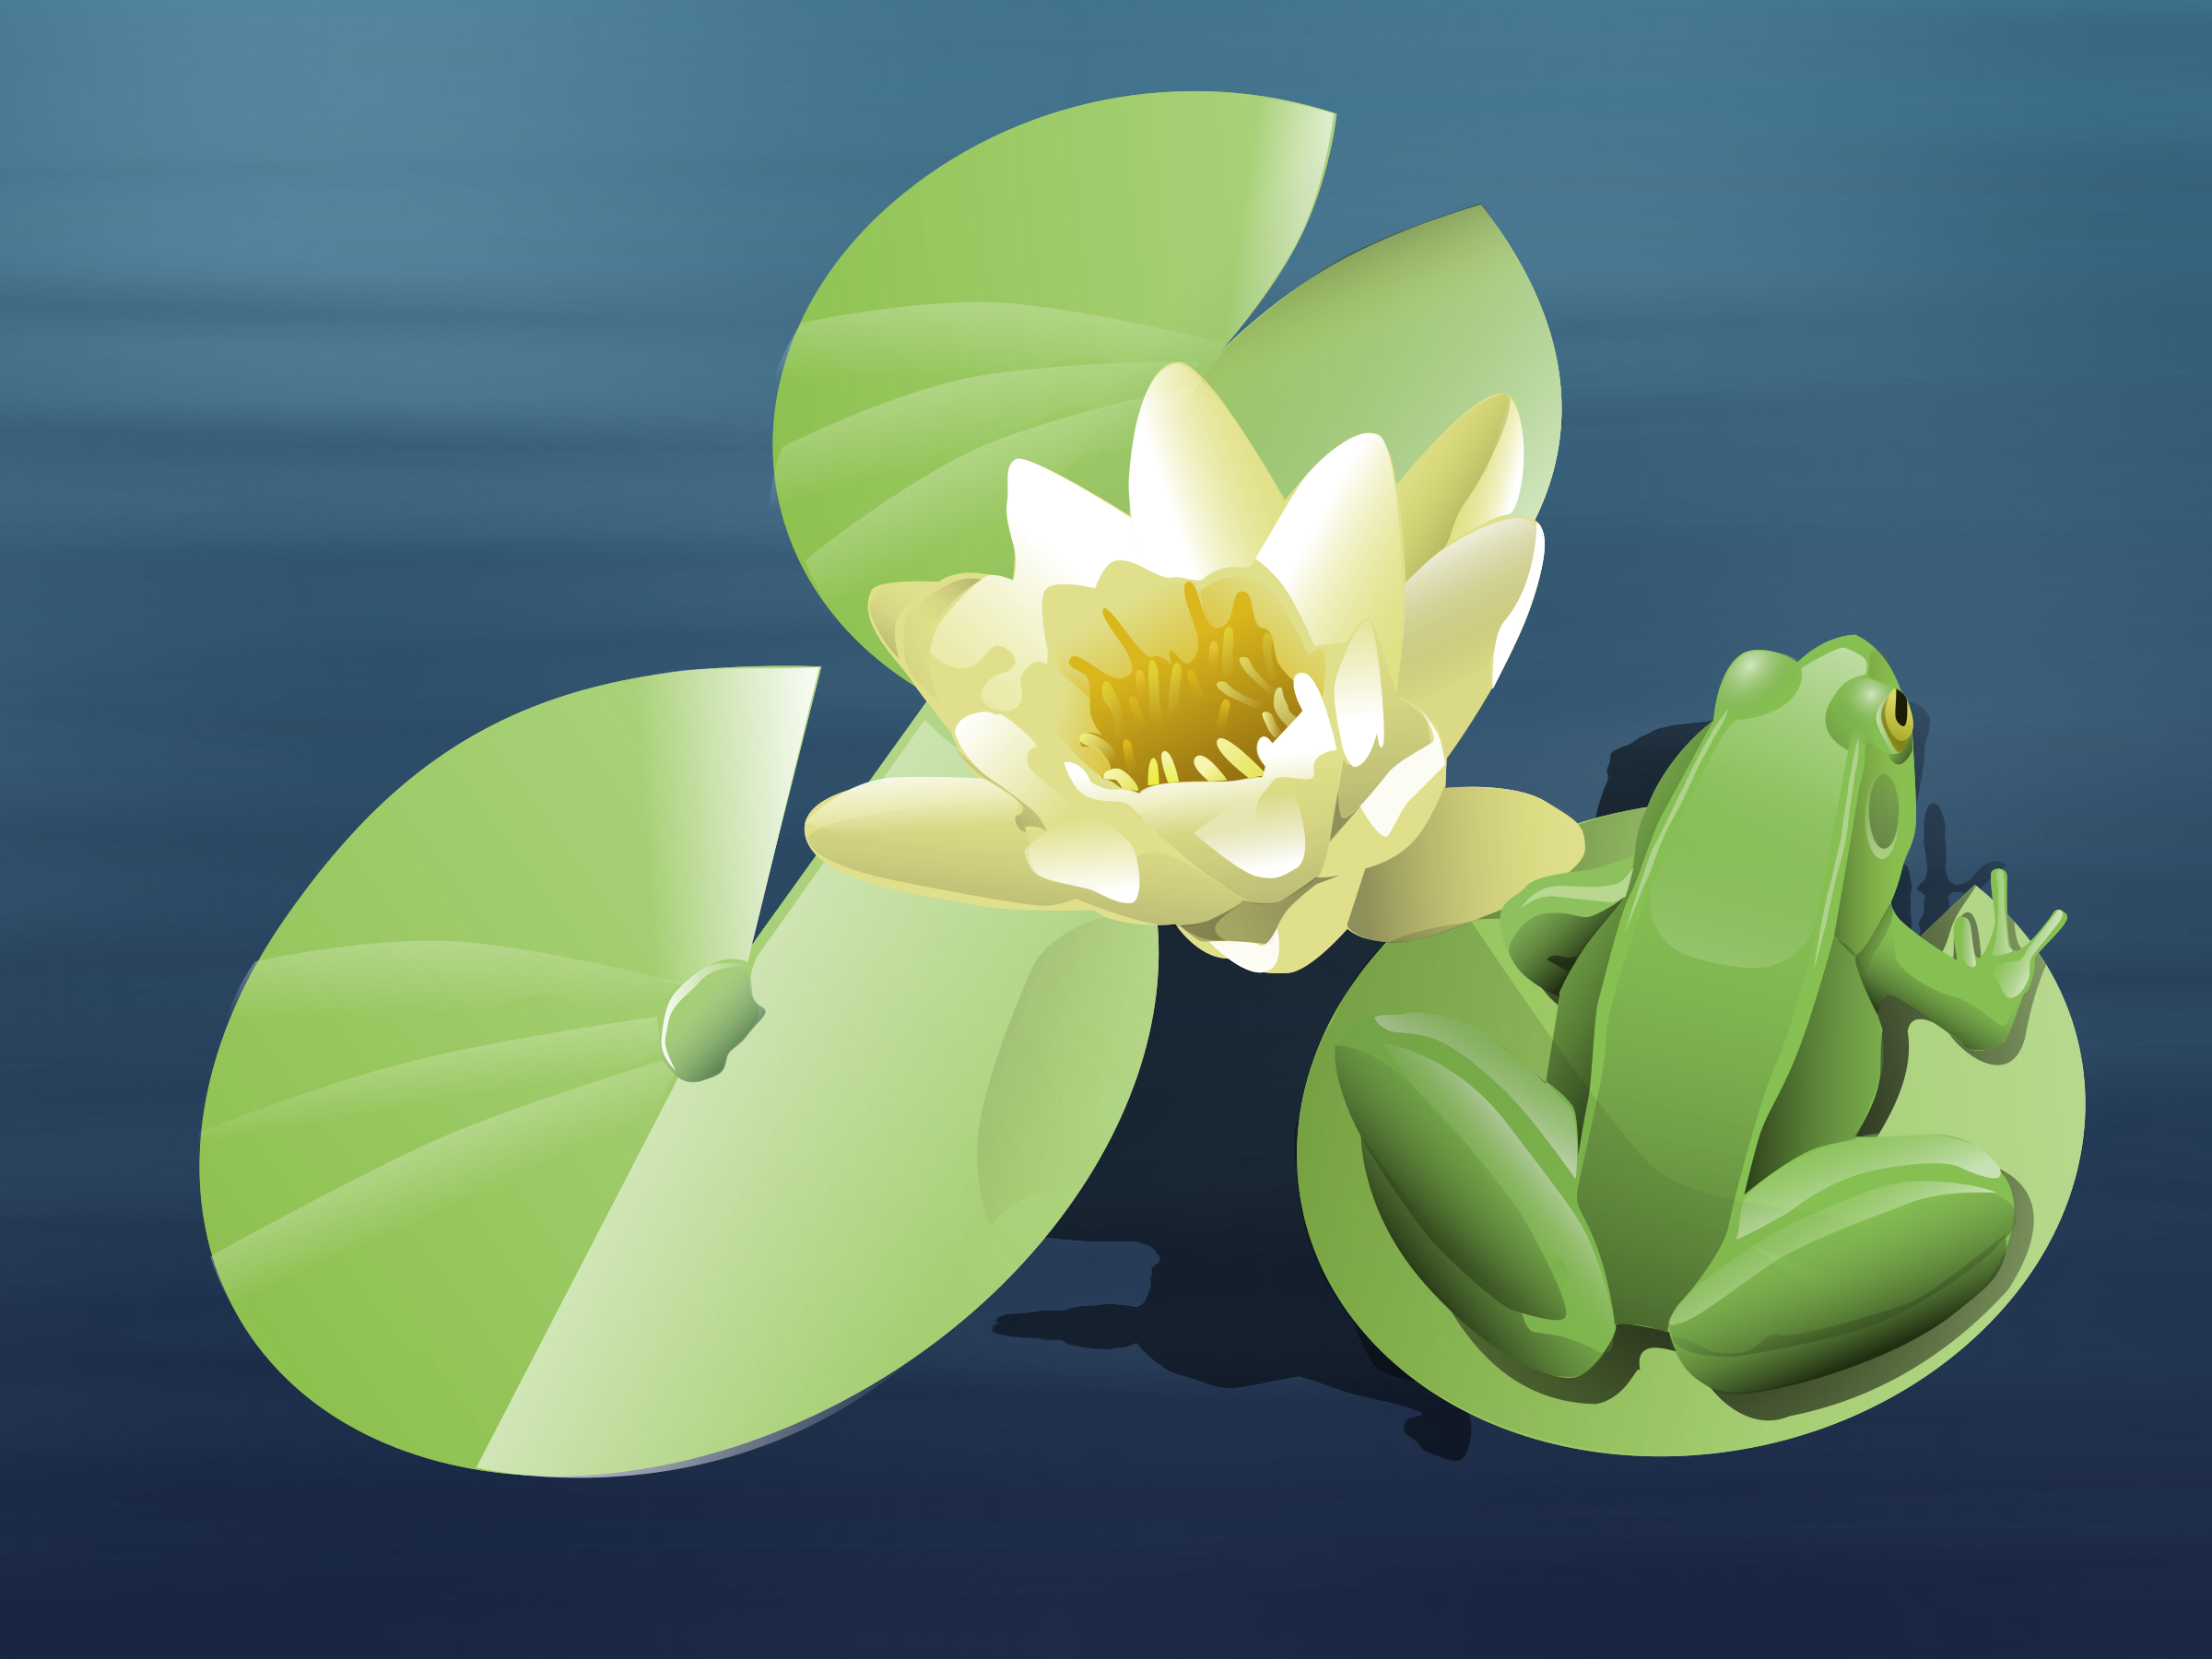 This free Icons Png design of frog on a lily pad (animated) PlusPng.com  - PNG Frog On Lily Pad